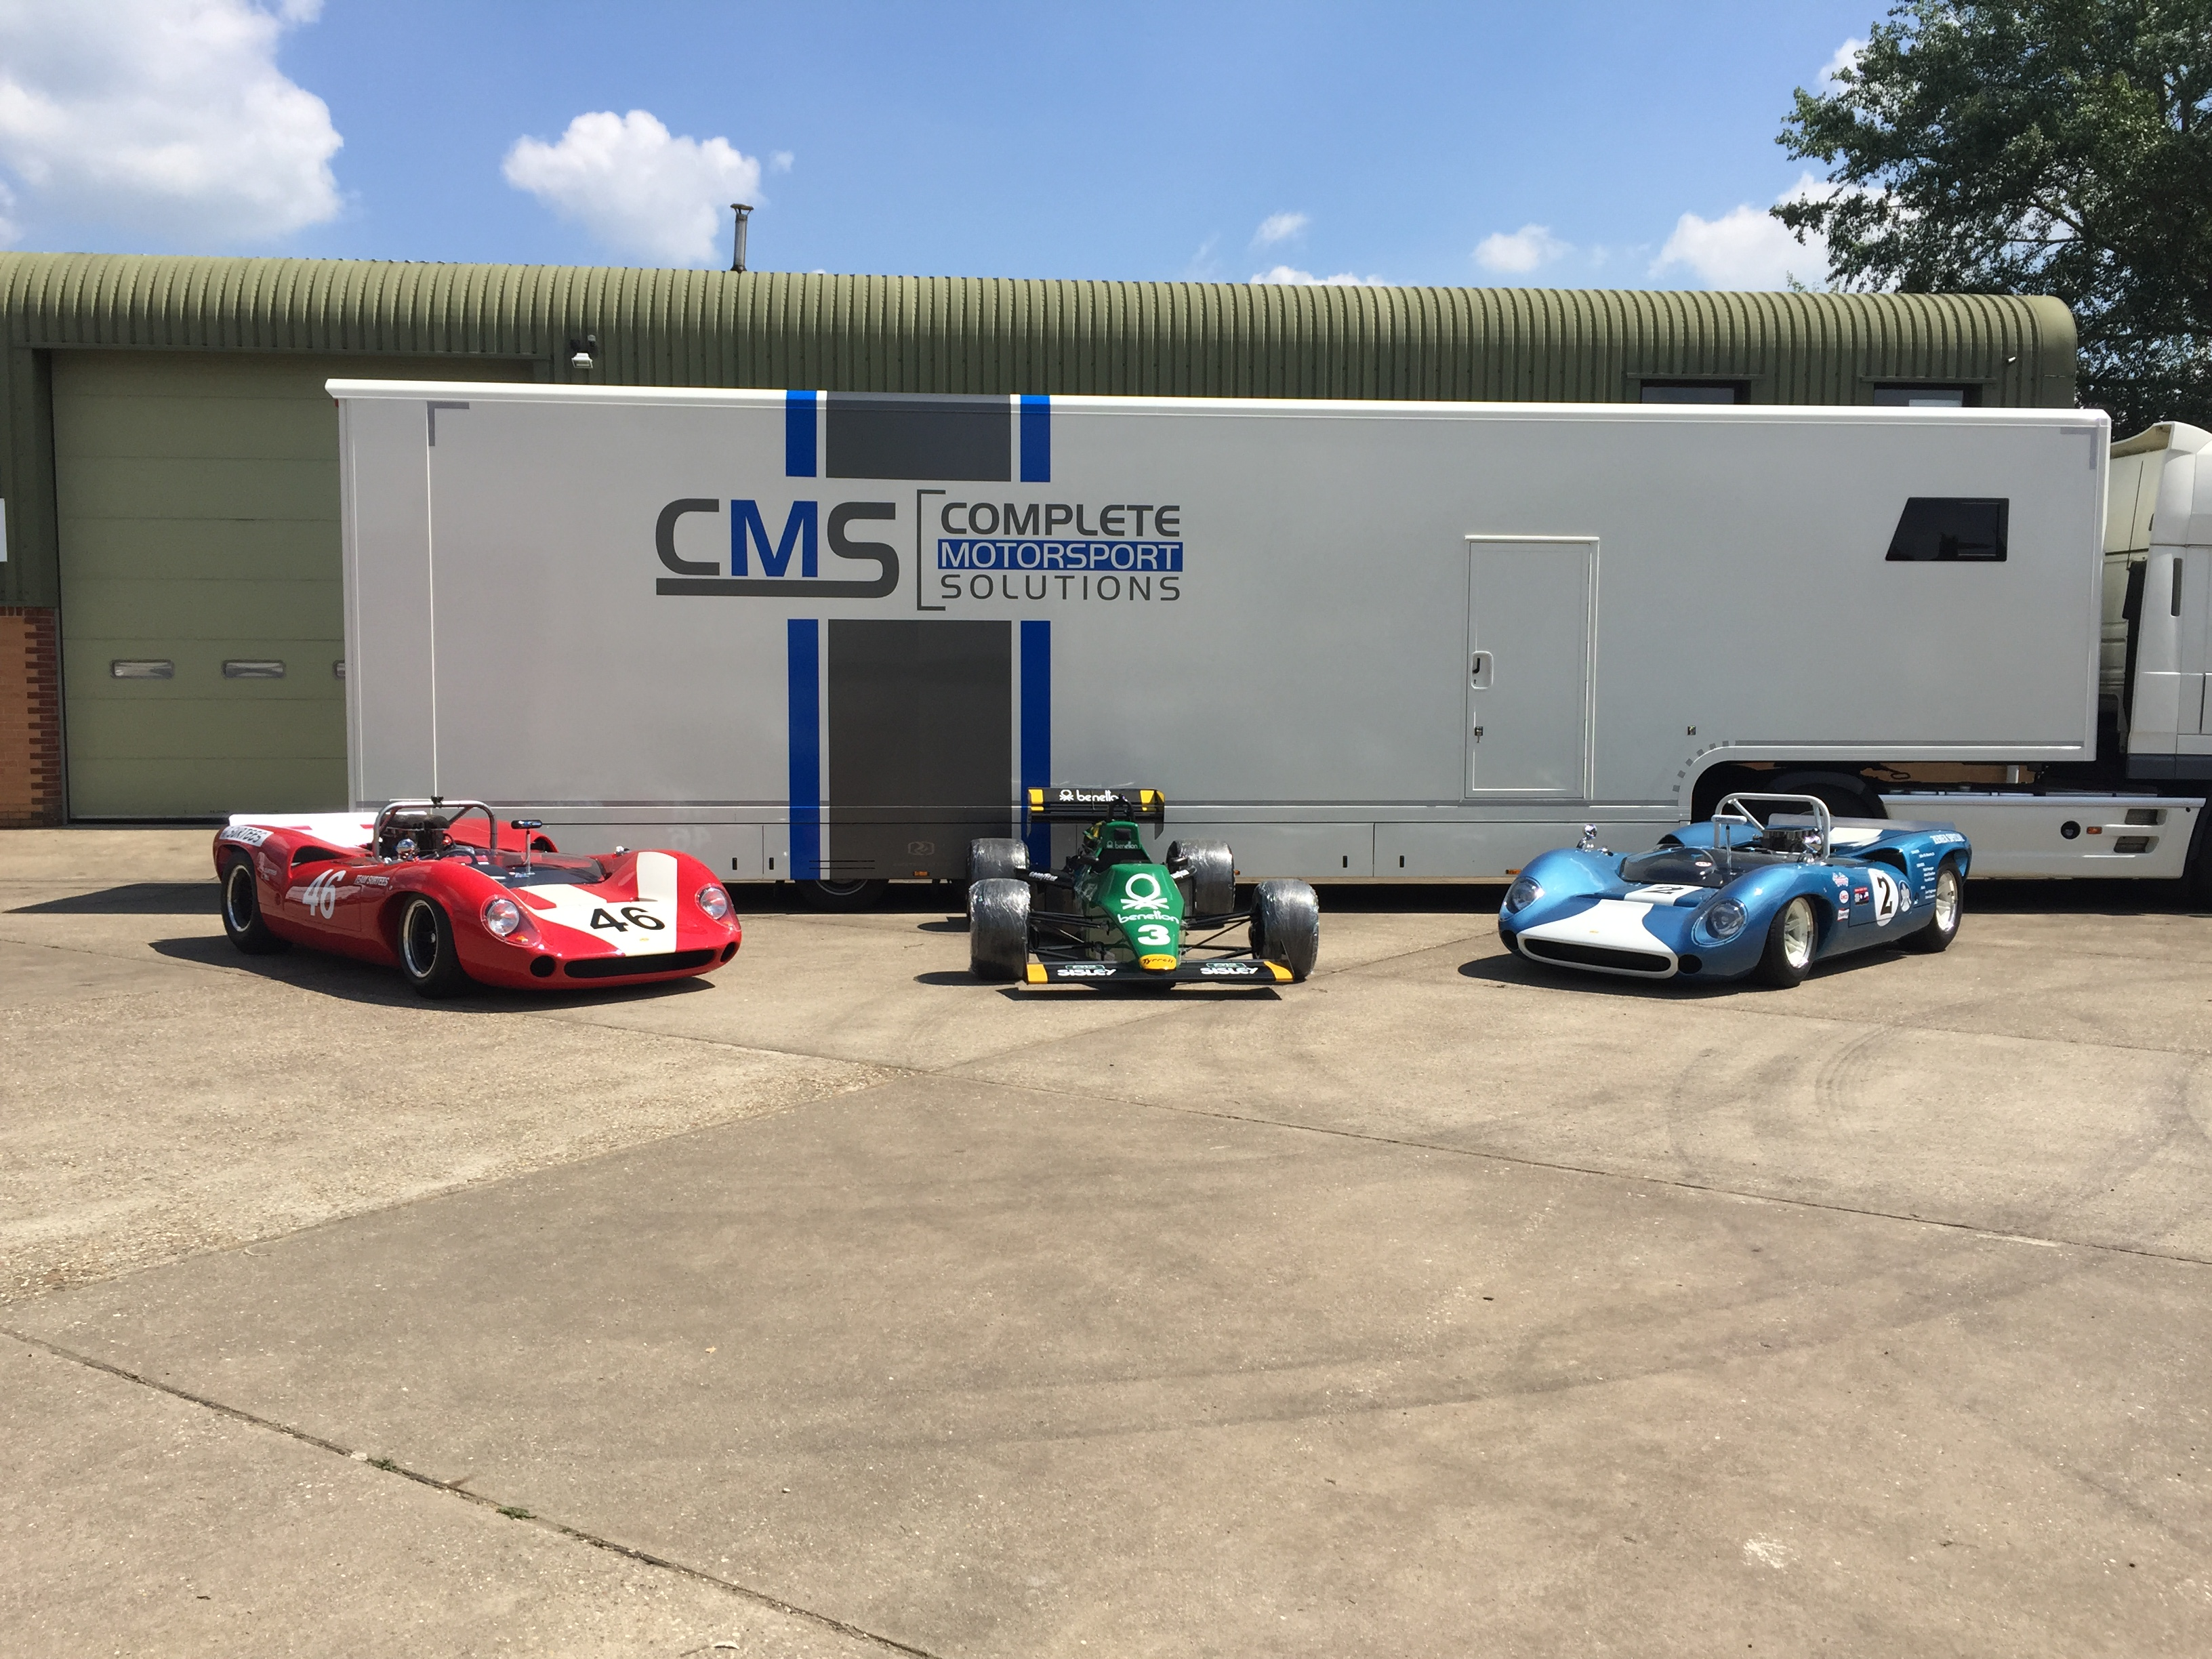 CMS Motorsport Facilties